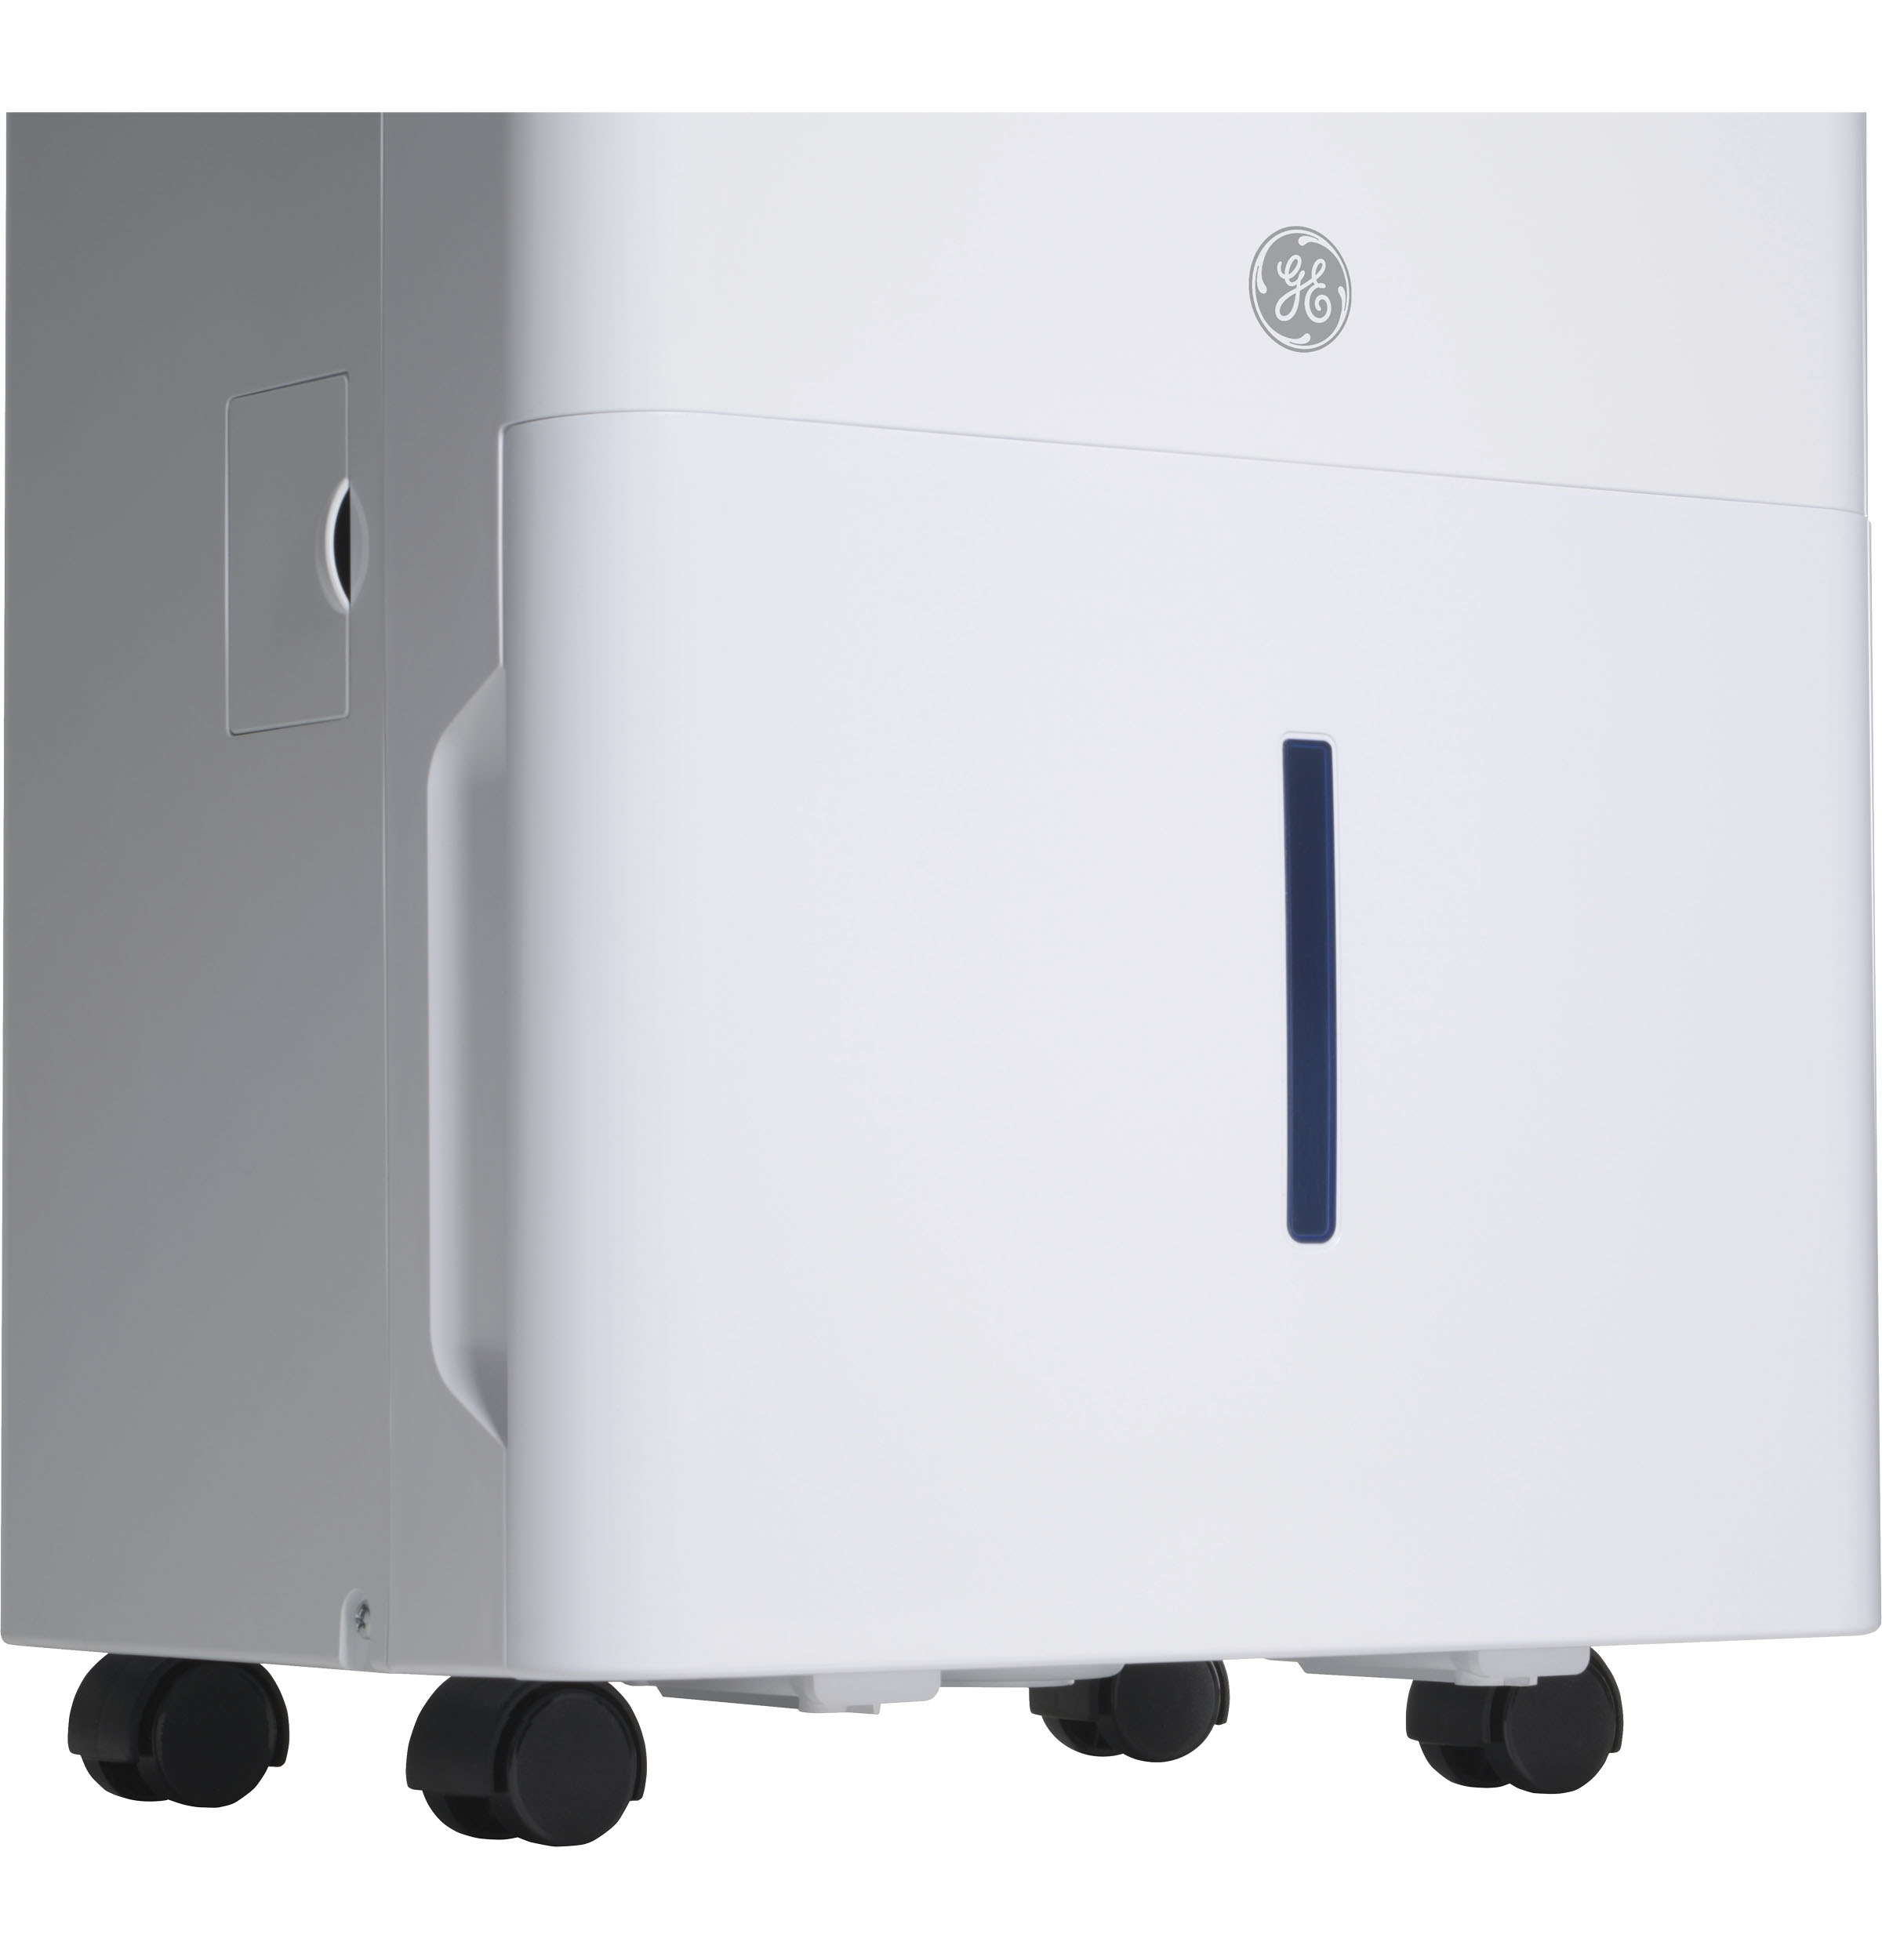 Model: ADEL20LY | GE GE® Dehumidifier